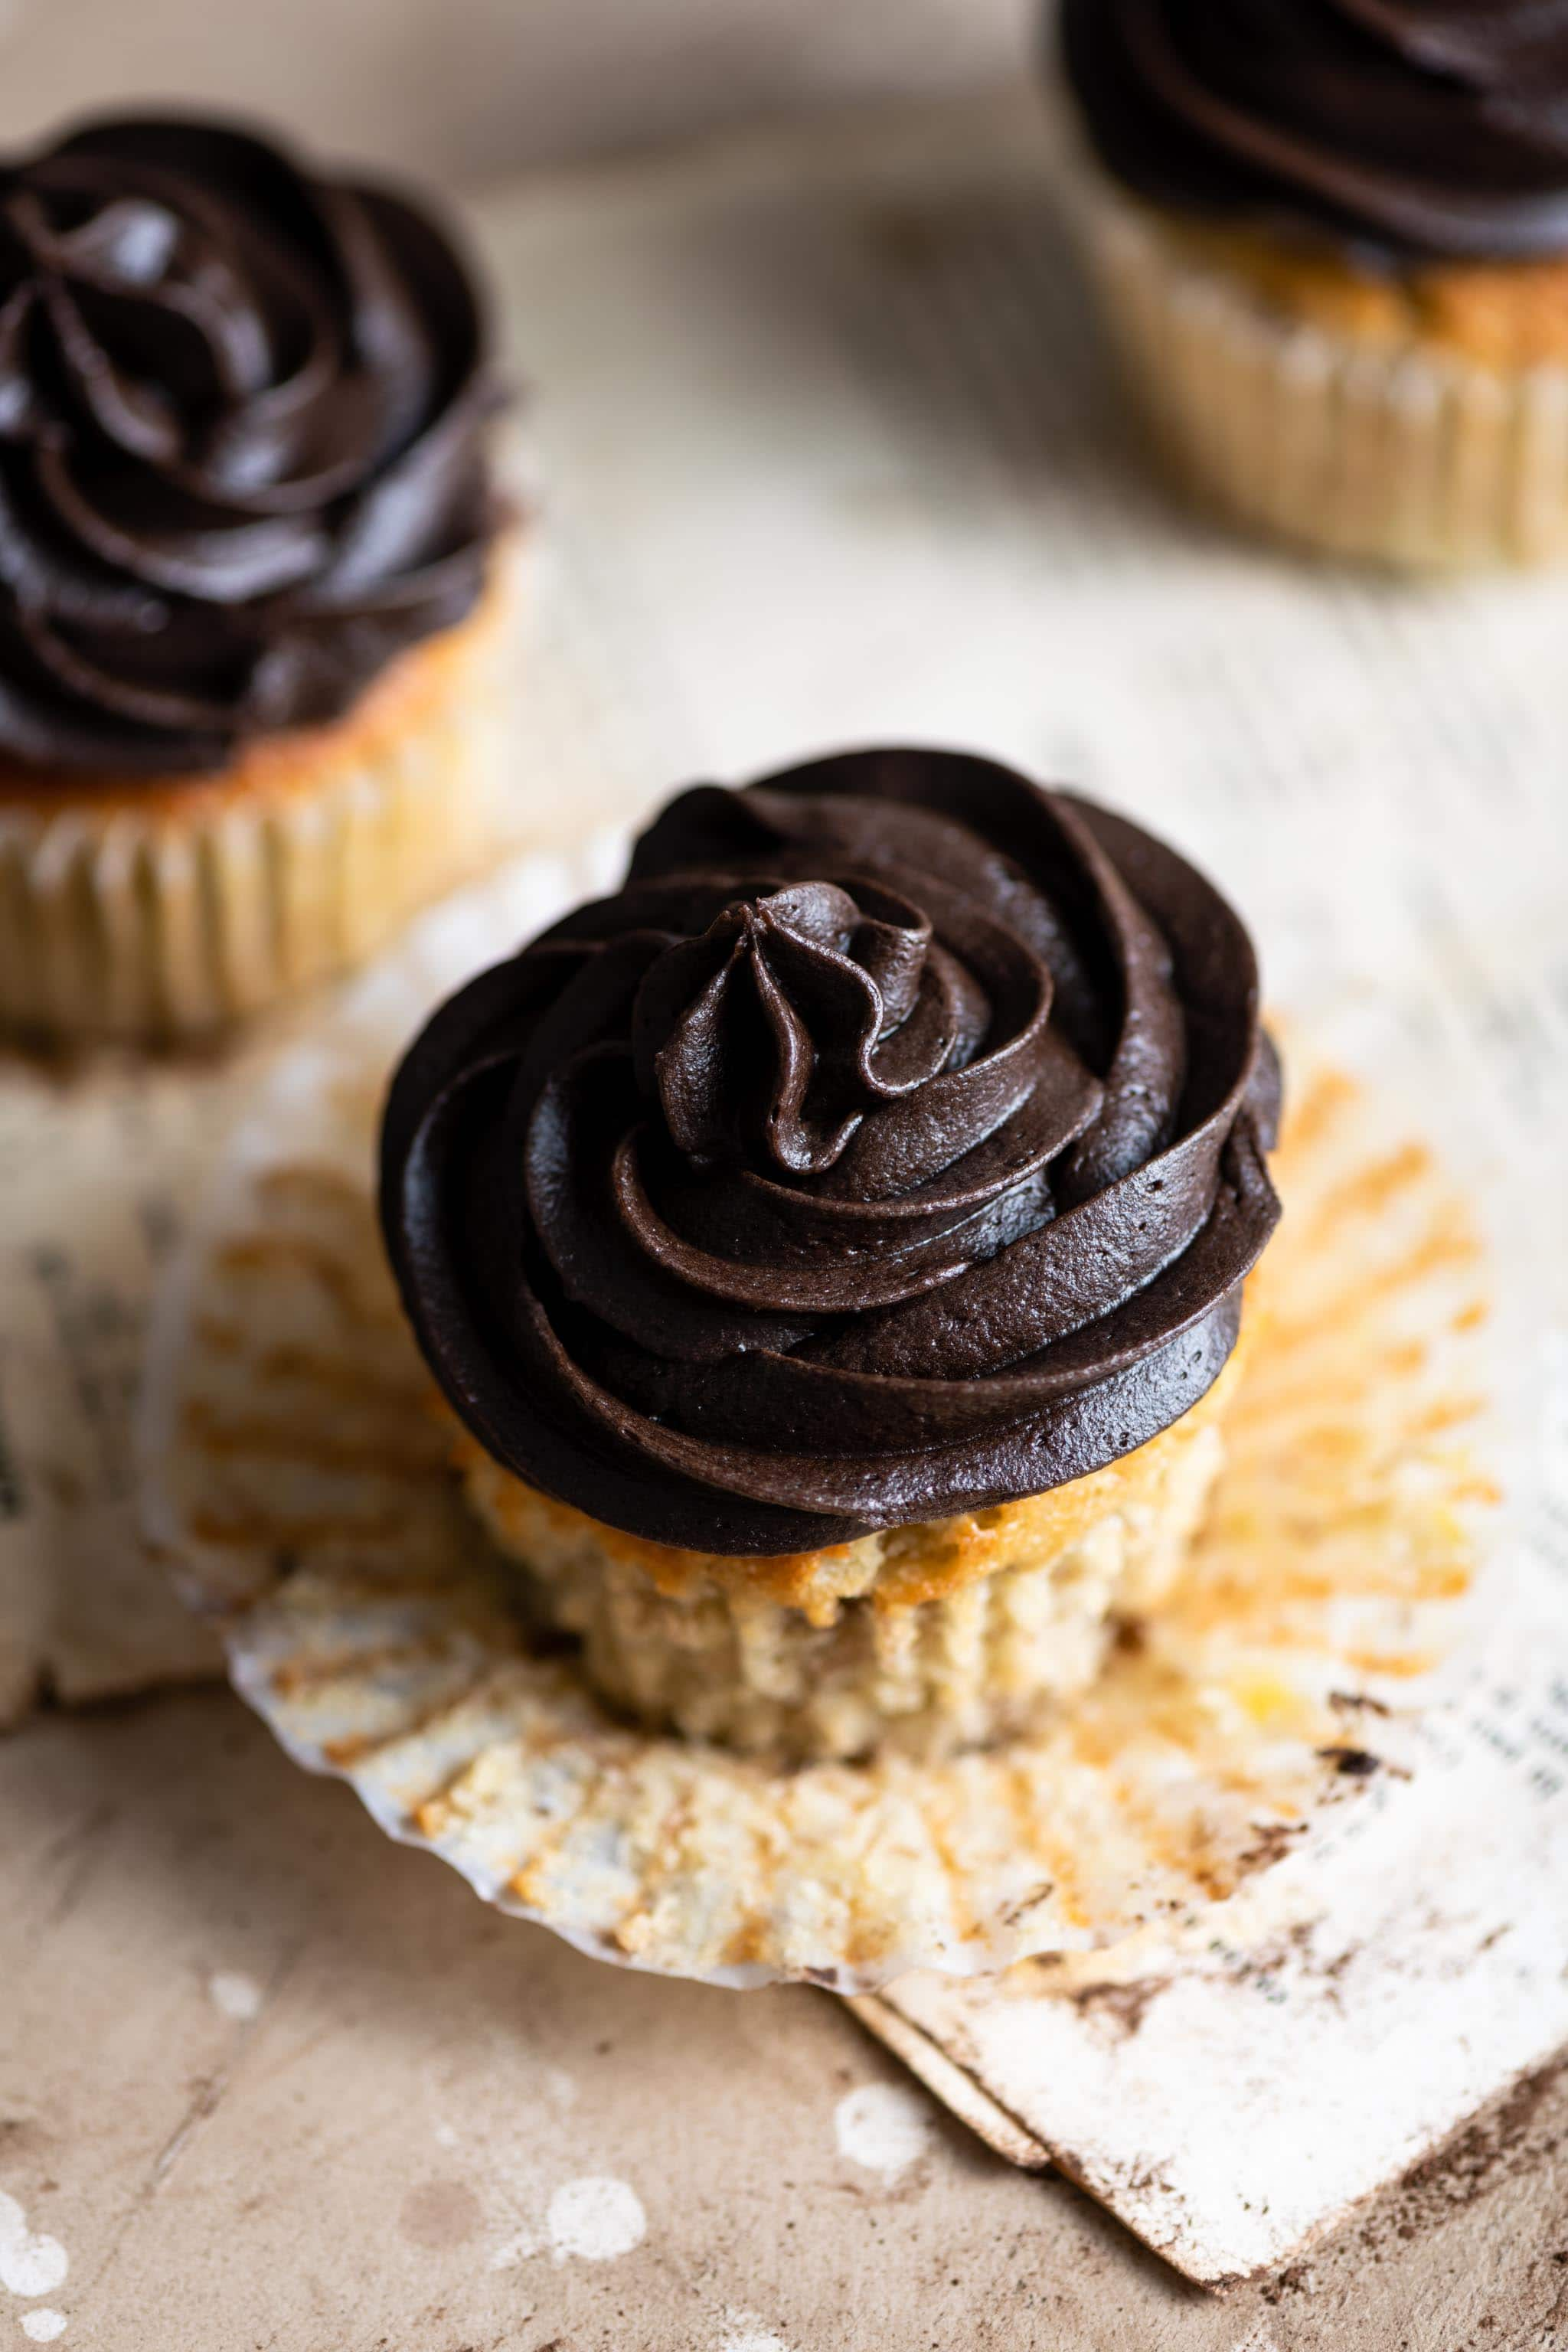 Banana Cupcakes with Chocolate Buttercream Frosting